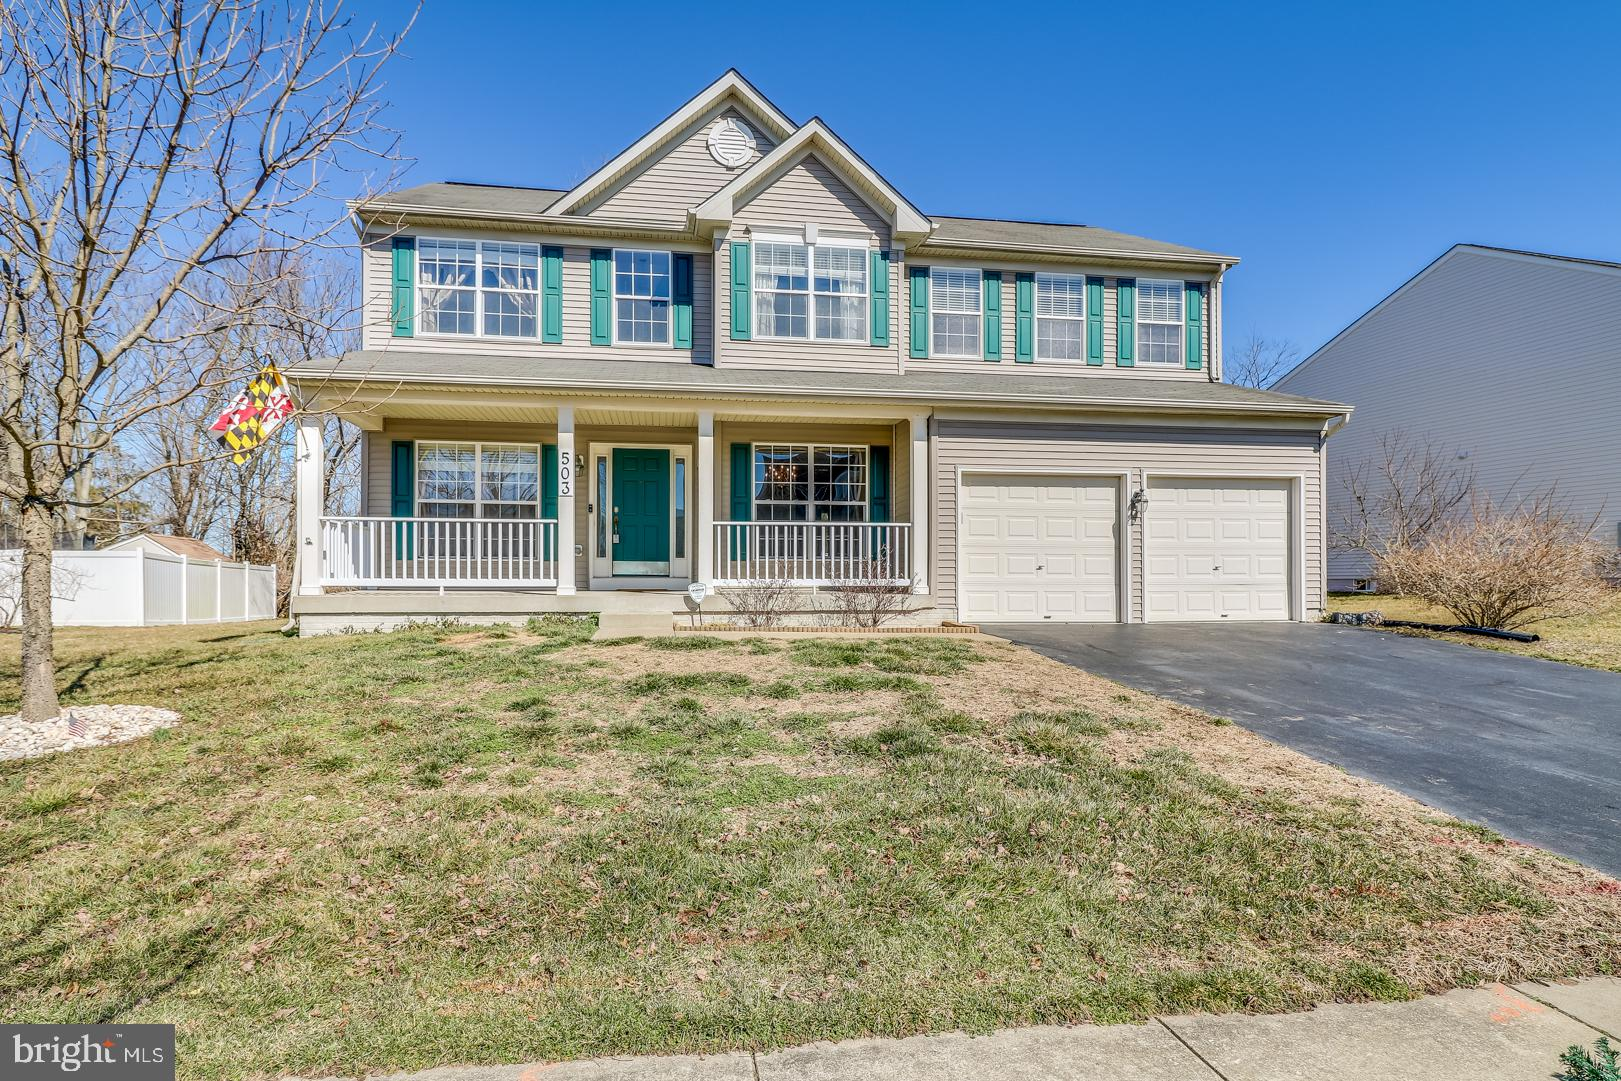 Spacious 5 Bedroom, 2.5 Bath Home in sought after North Brook neighborhood!  Featuring almost 3,000